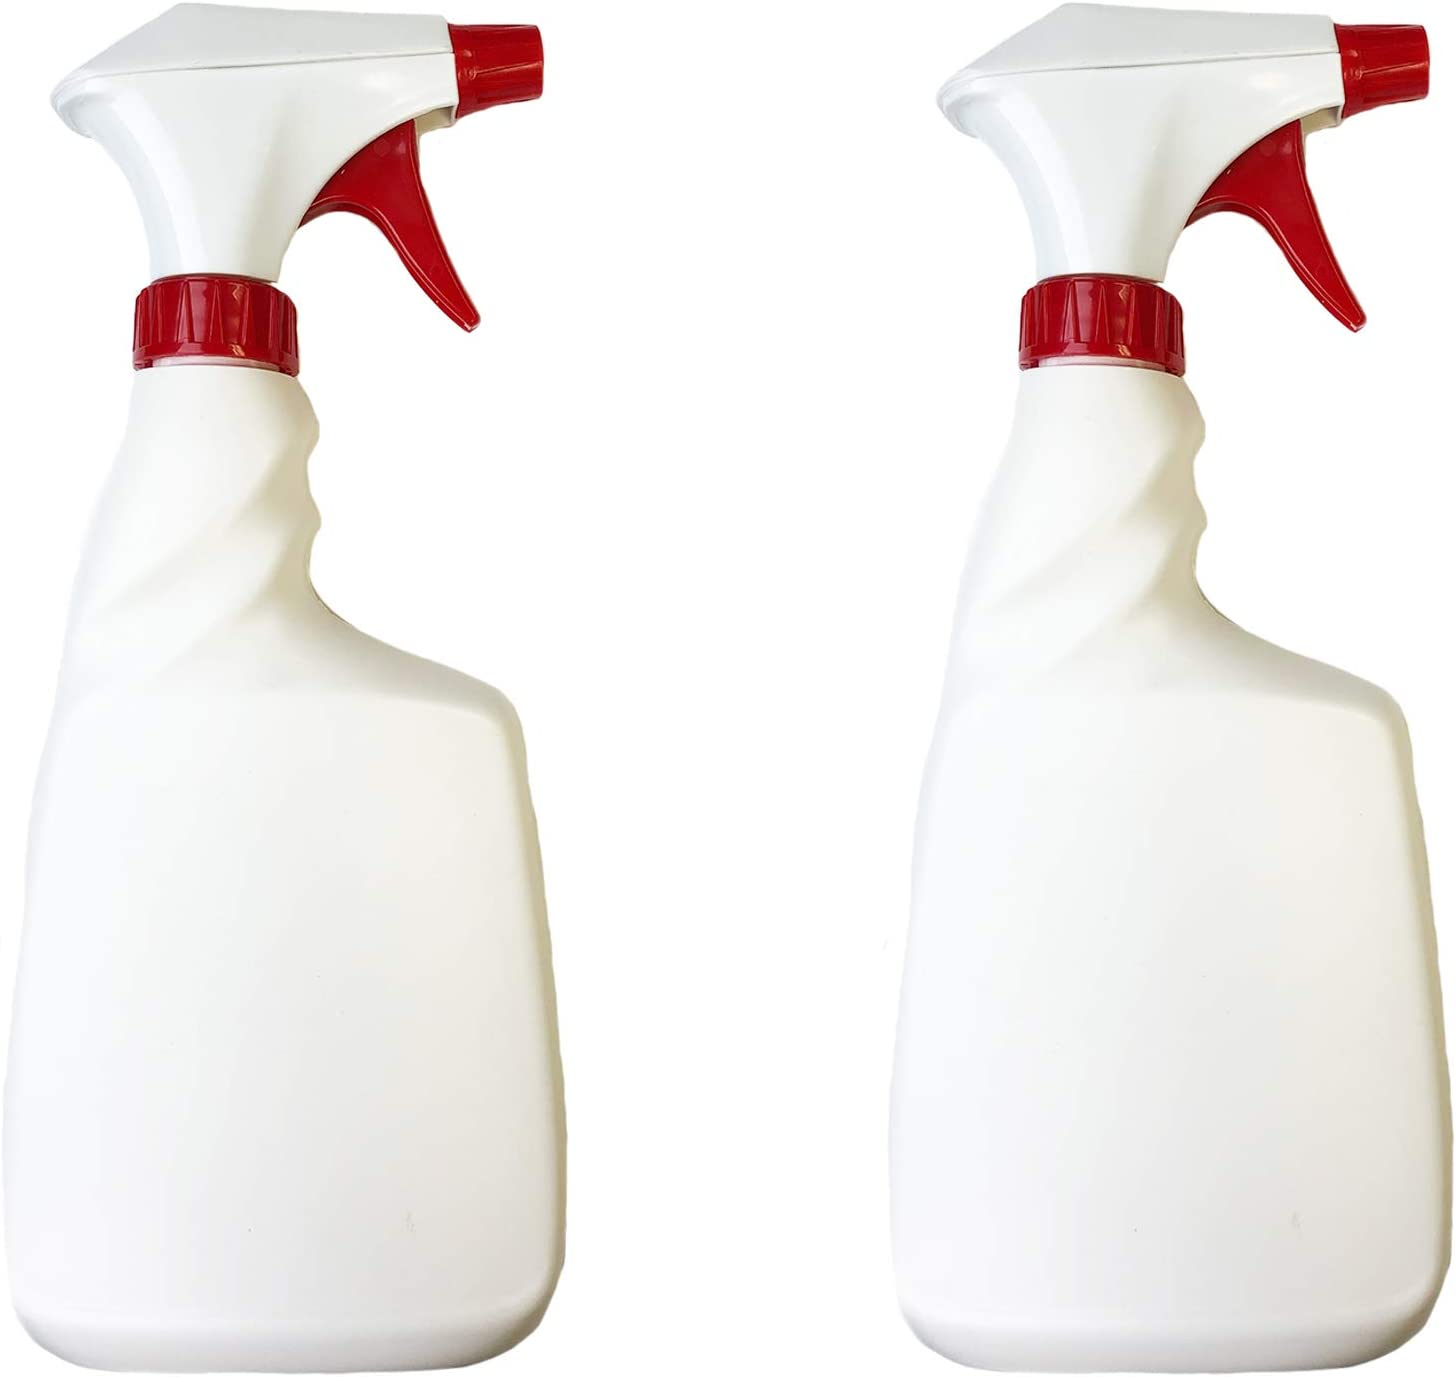 Spray Bottle Empty Plastic Resistant Replacement New Free Shipping National uniform free shipping Chemical Mist